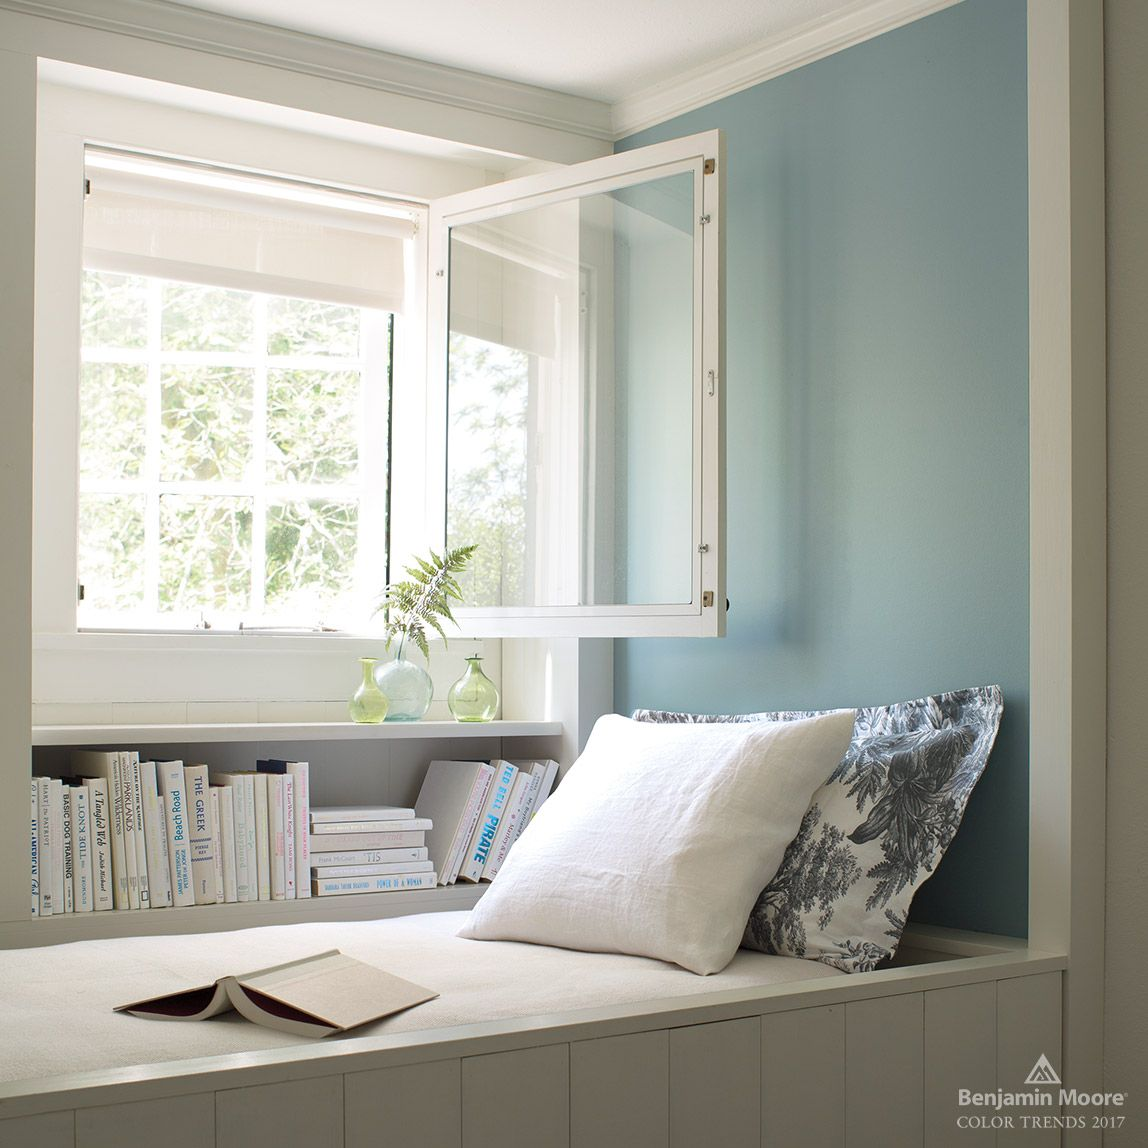 2017 color trends benjamin moore light blue walls and Bedroom wall colors 2017